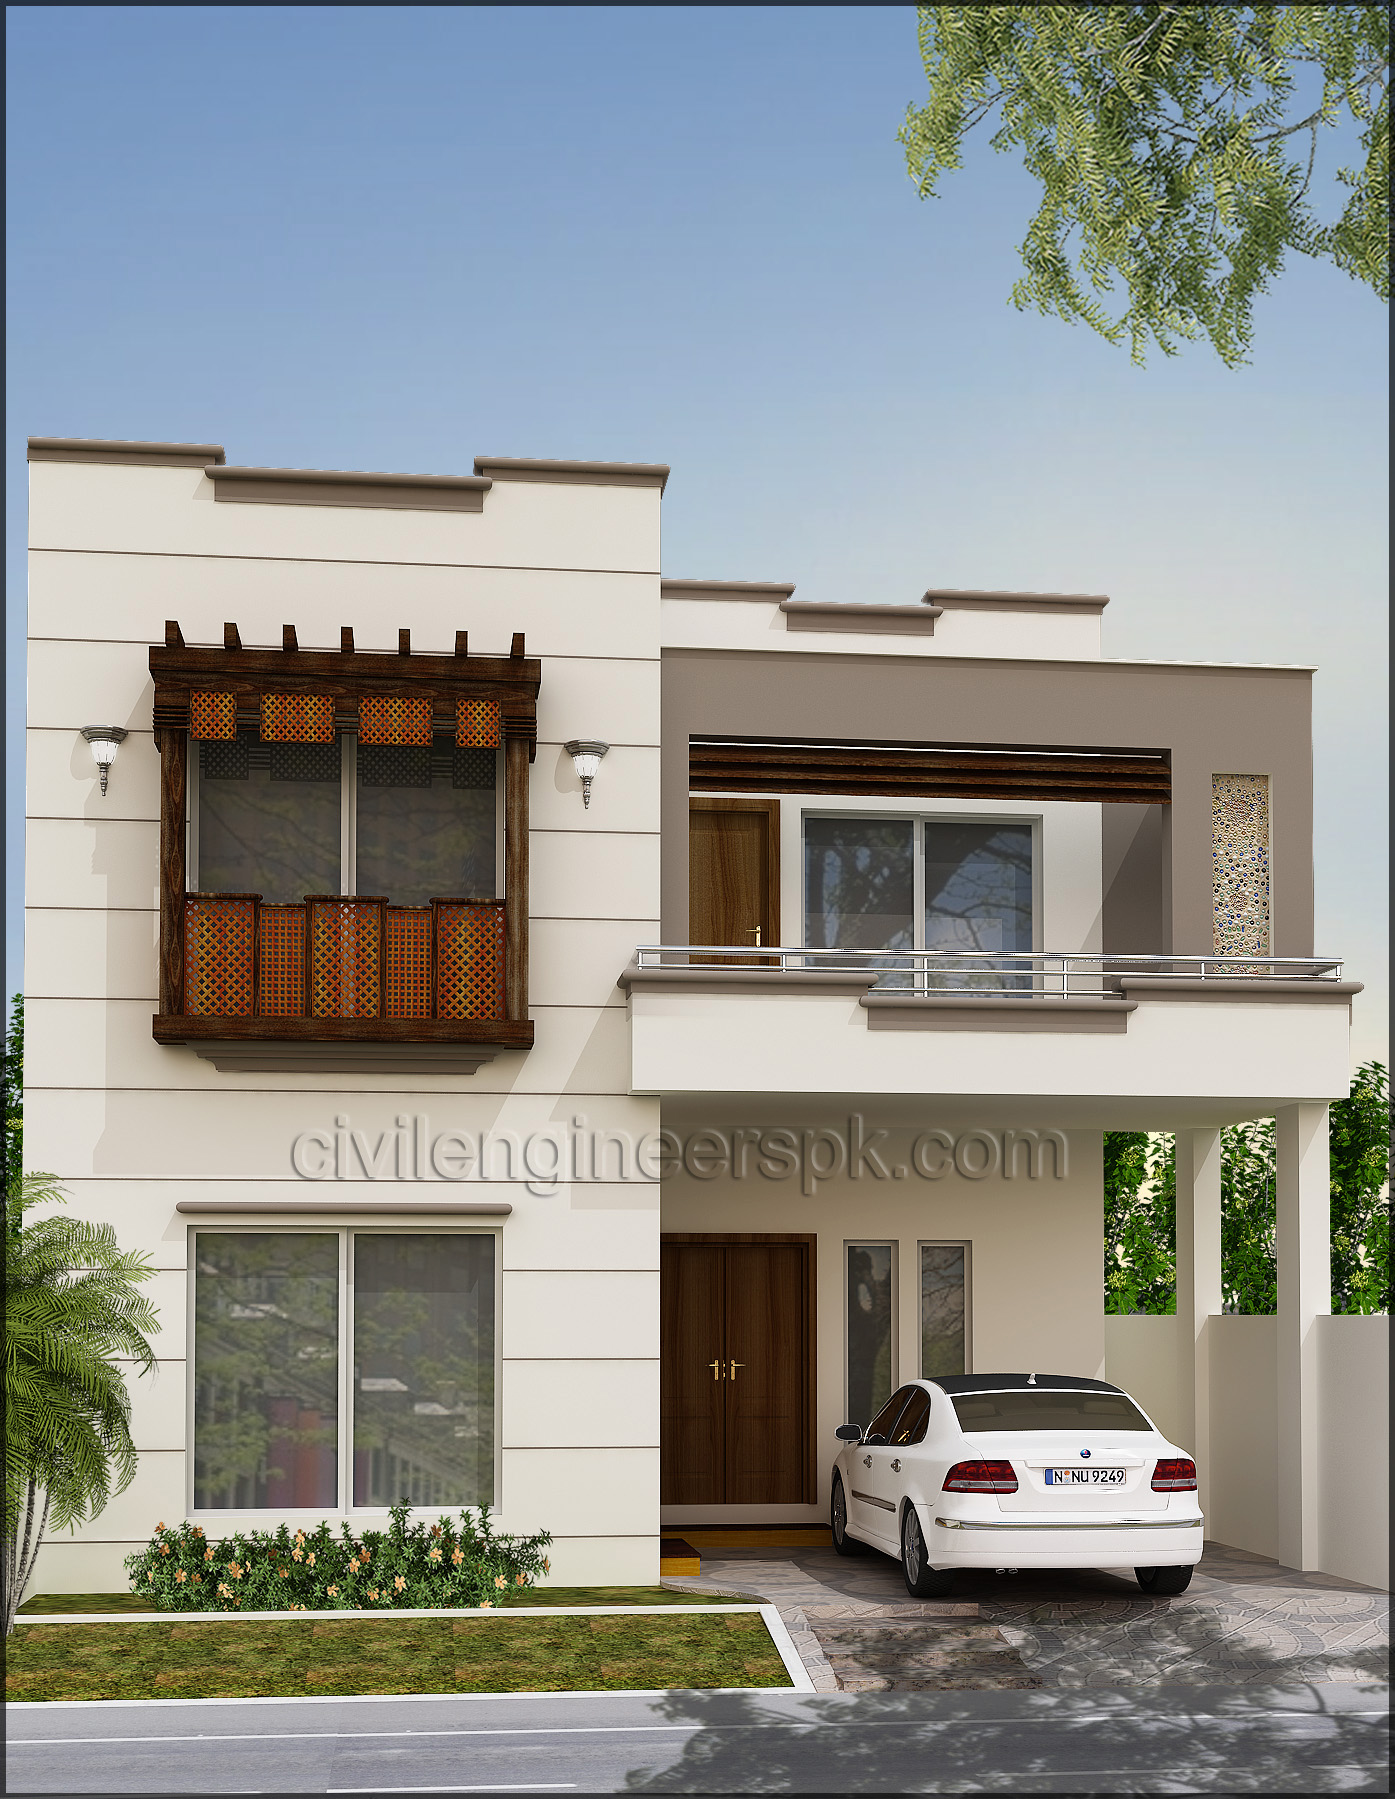 Front views civil engineers pk for Beautiful home front design